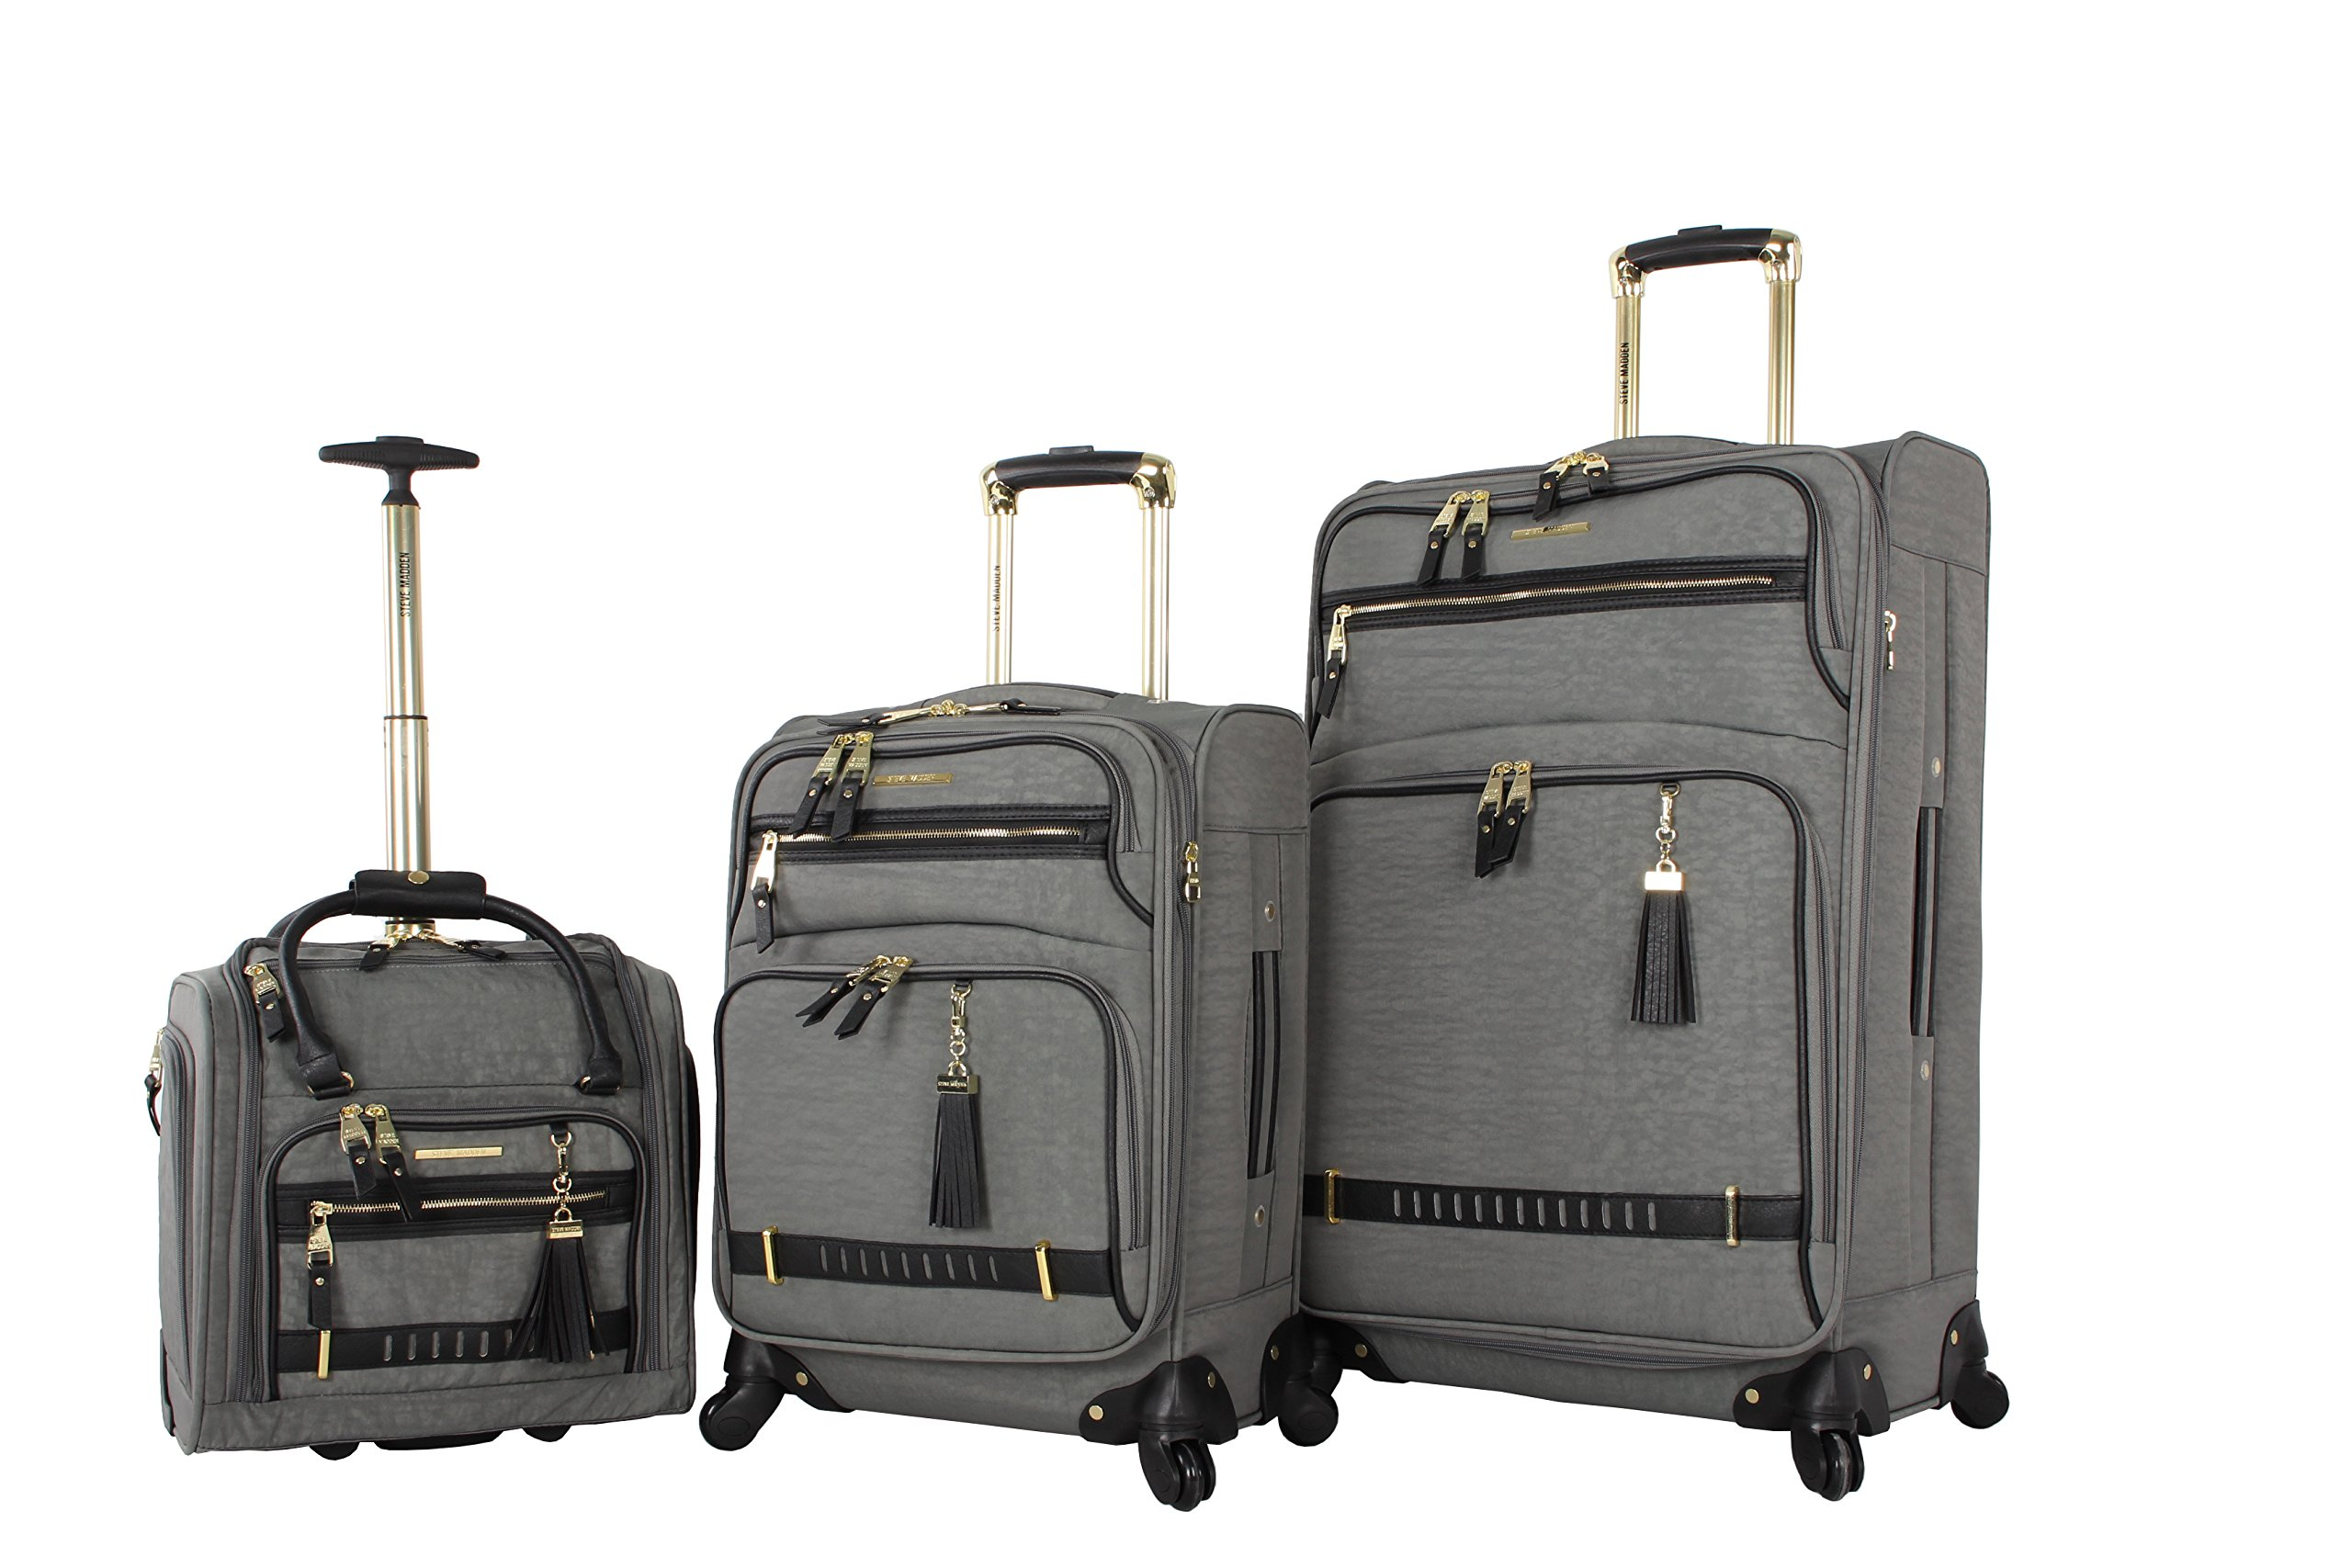 Steve Madden Luggage 3 Piece Softside Spinner Suitcase Set Collection (Peek-A-Boo Grey)